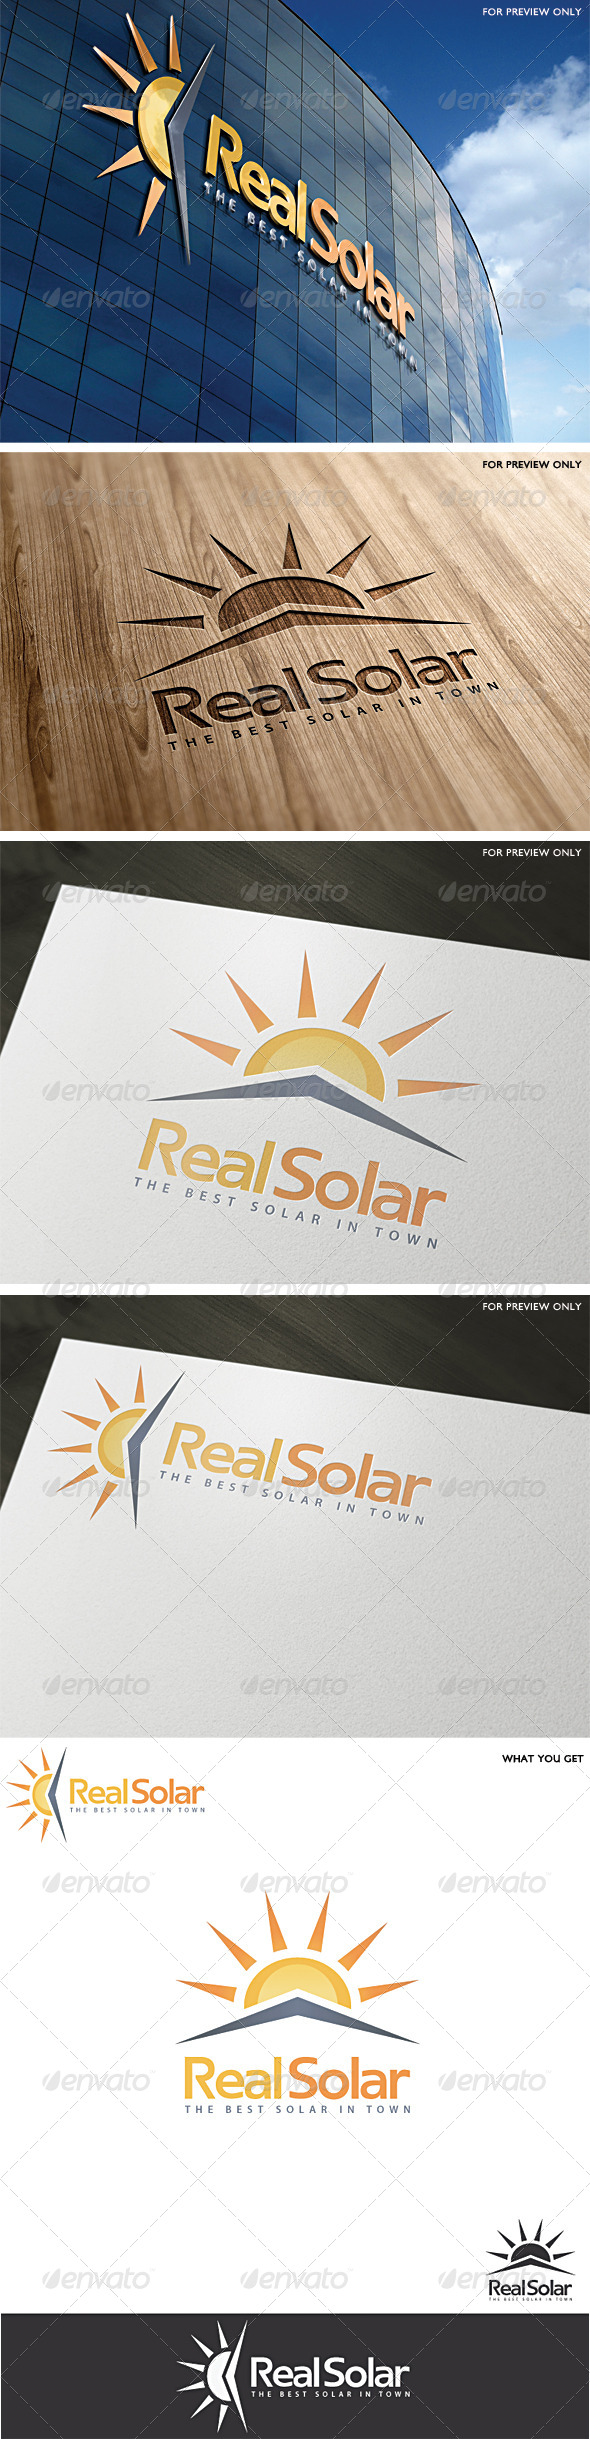 Solar Logo Template v2 - Abstract Logo Templates